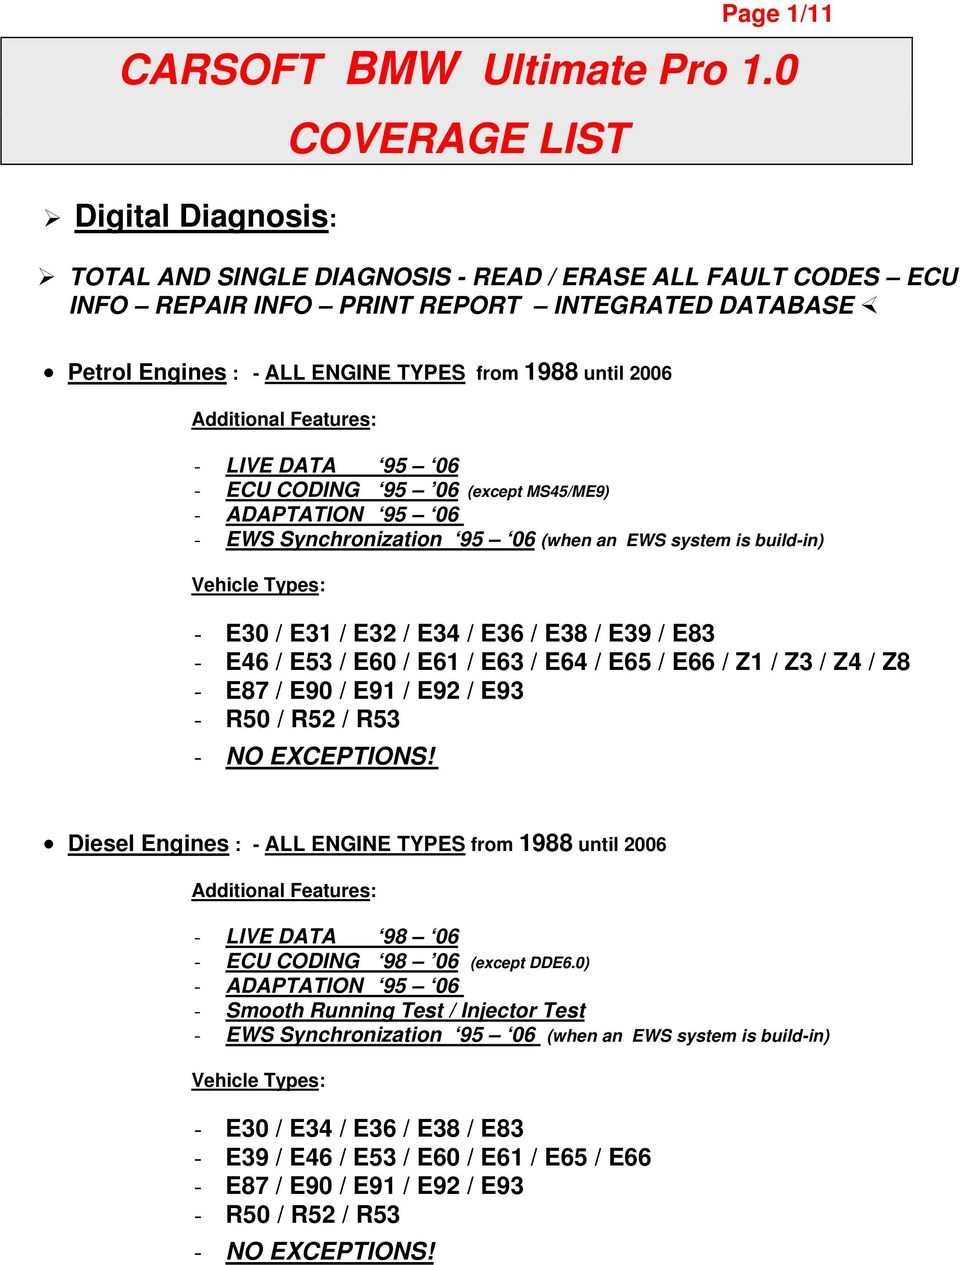 TOTAL AND SINGLE DIAGNOSIS - READ / ERASE ALL FAULT CODES